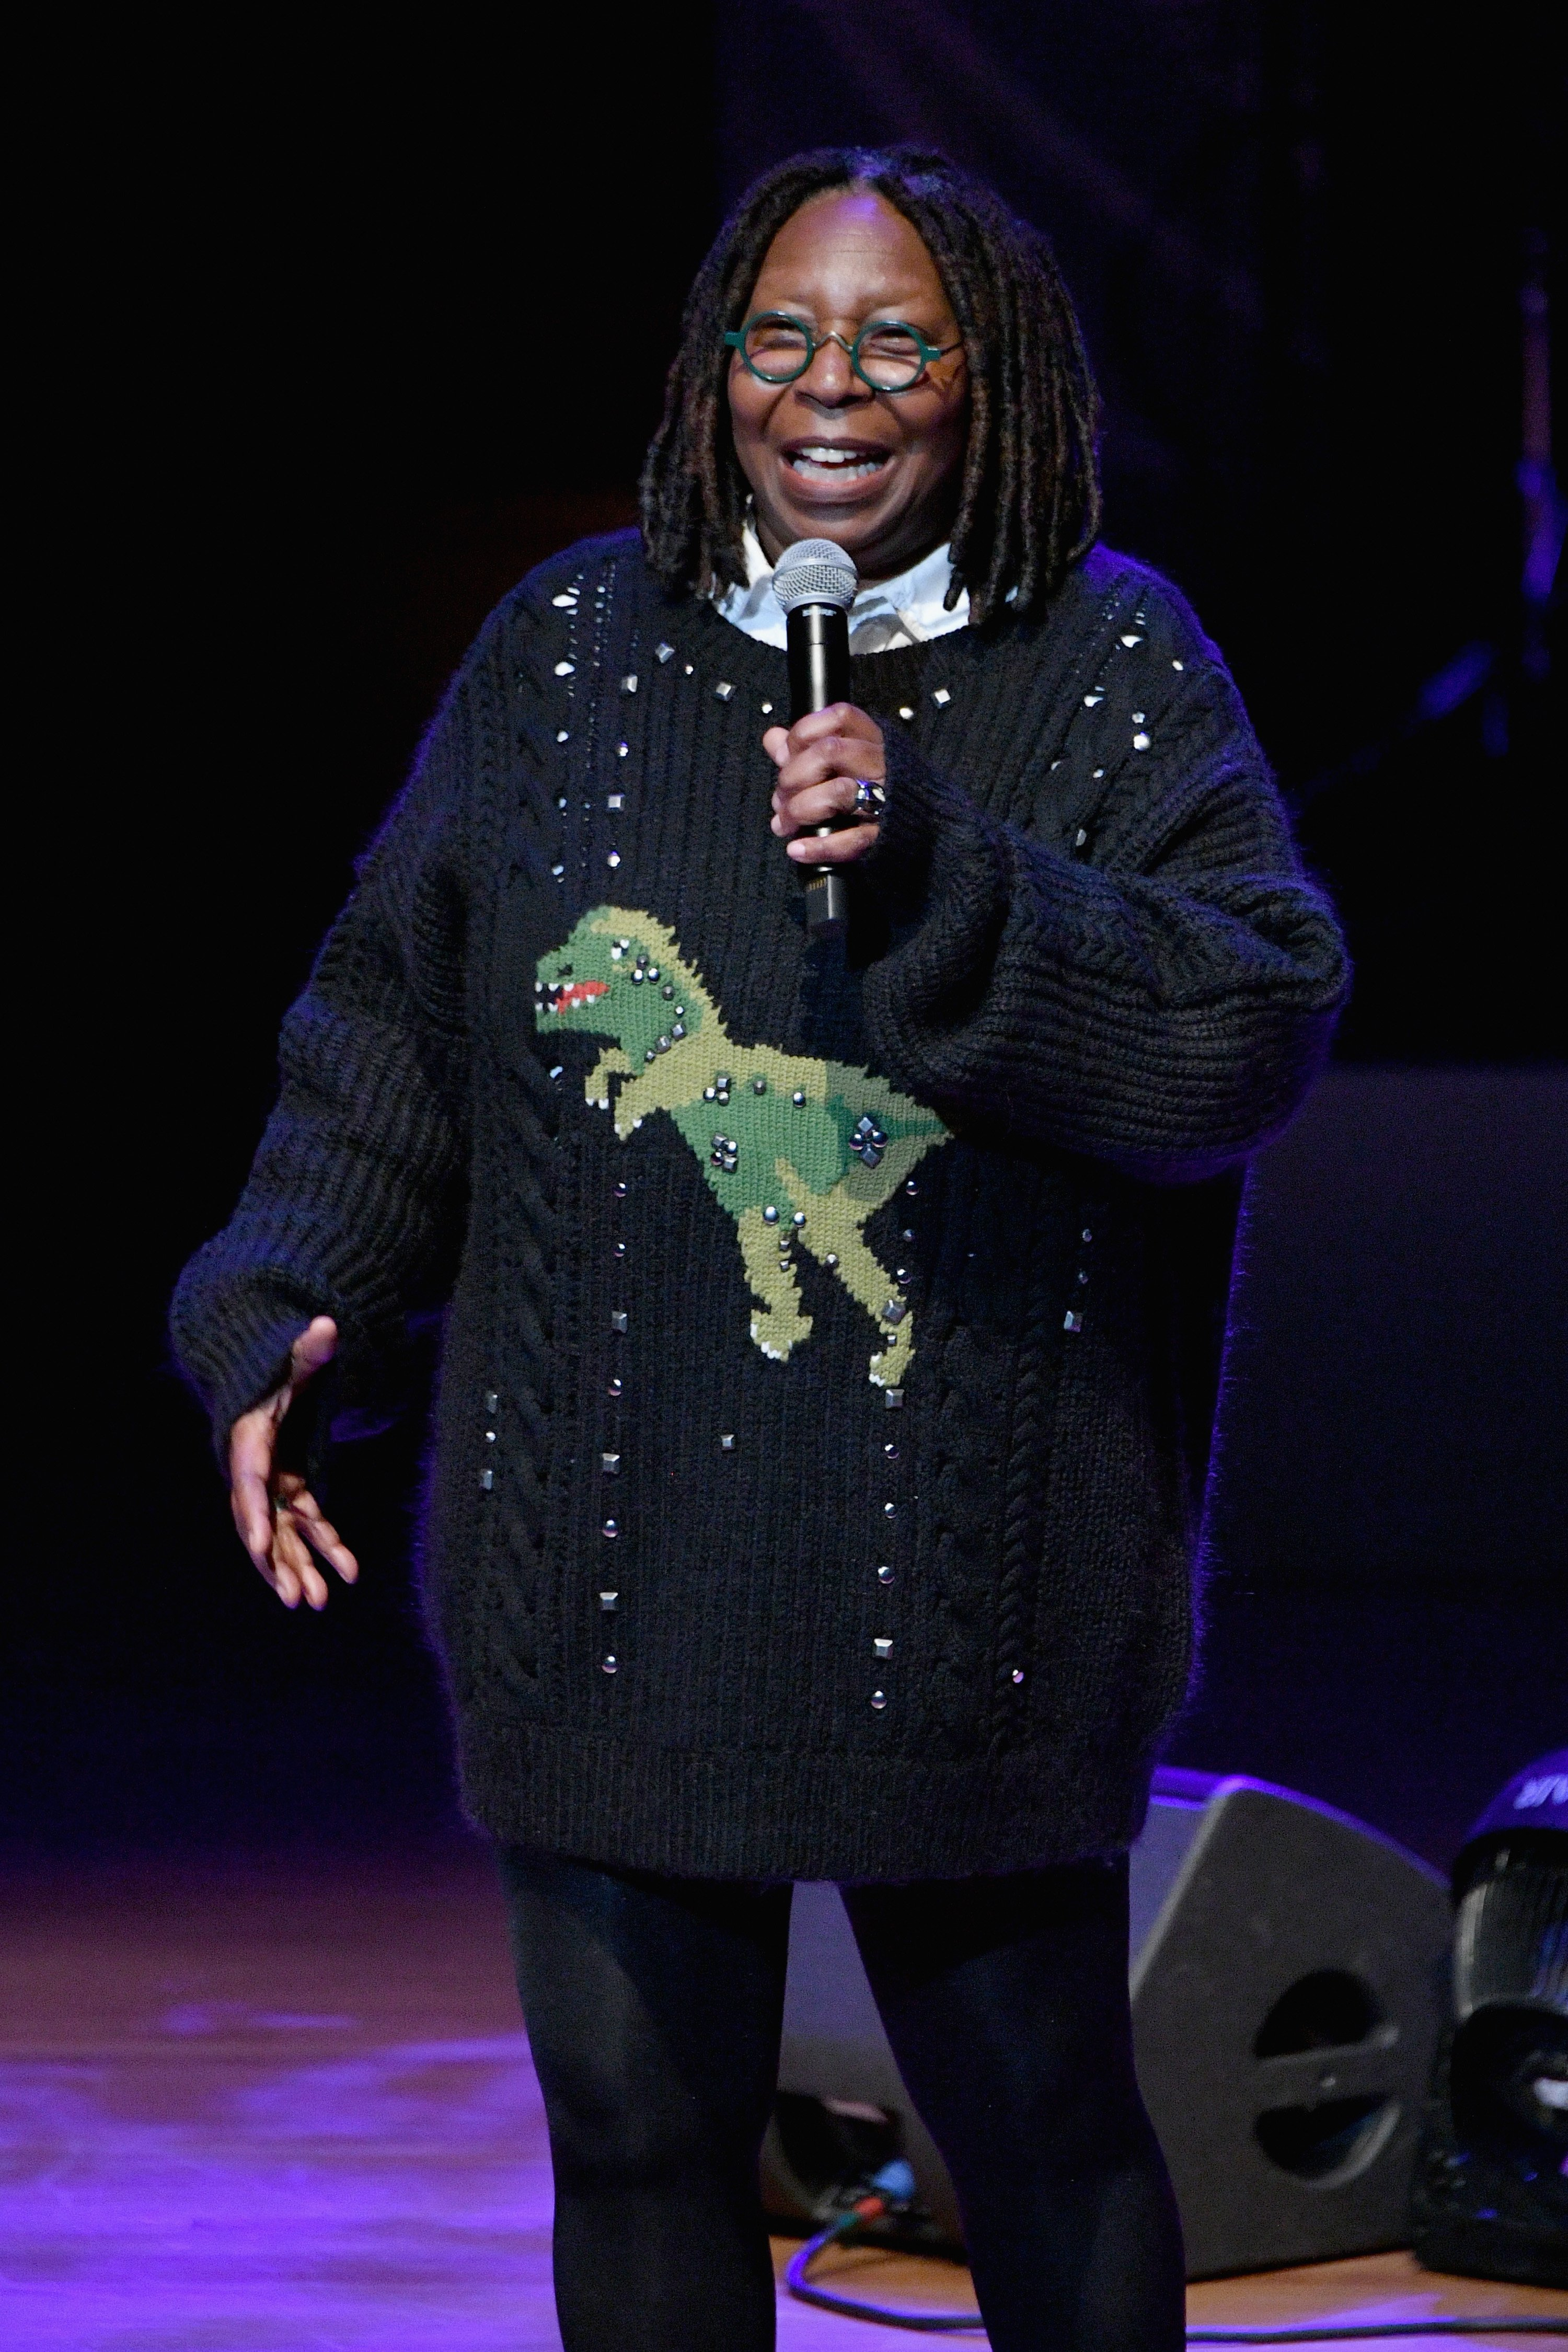 Whoopi Goldberg speaks onstage at the Lincoln Center Fashion Gala - An Evening Honoring Coach at Lincoln Center Theater on November 29, 2018, in New York City. | Source: Getty Images.